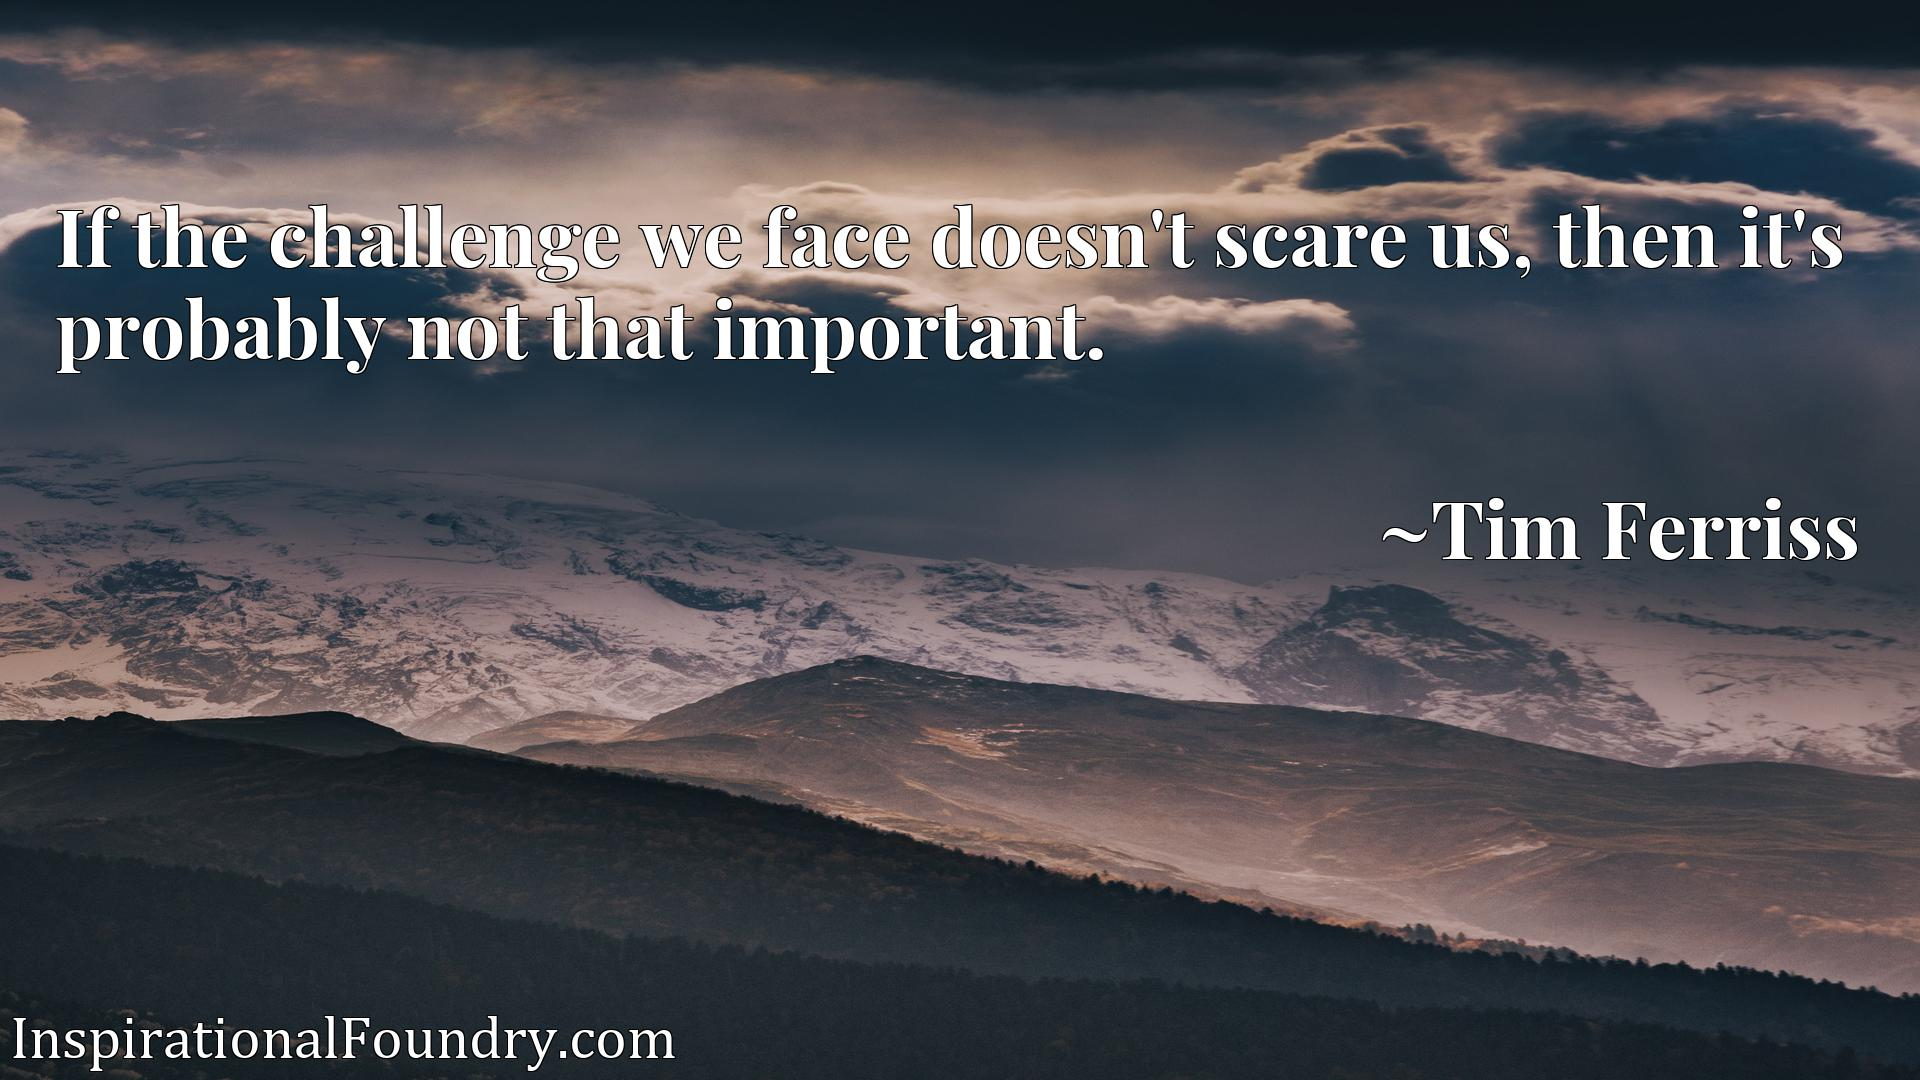 If the challenge we face doesn't scare us, then it's probably not that important.